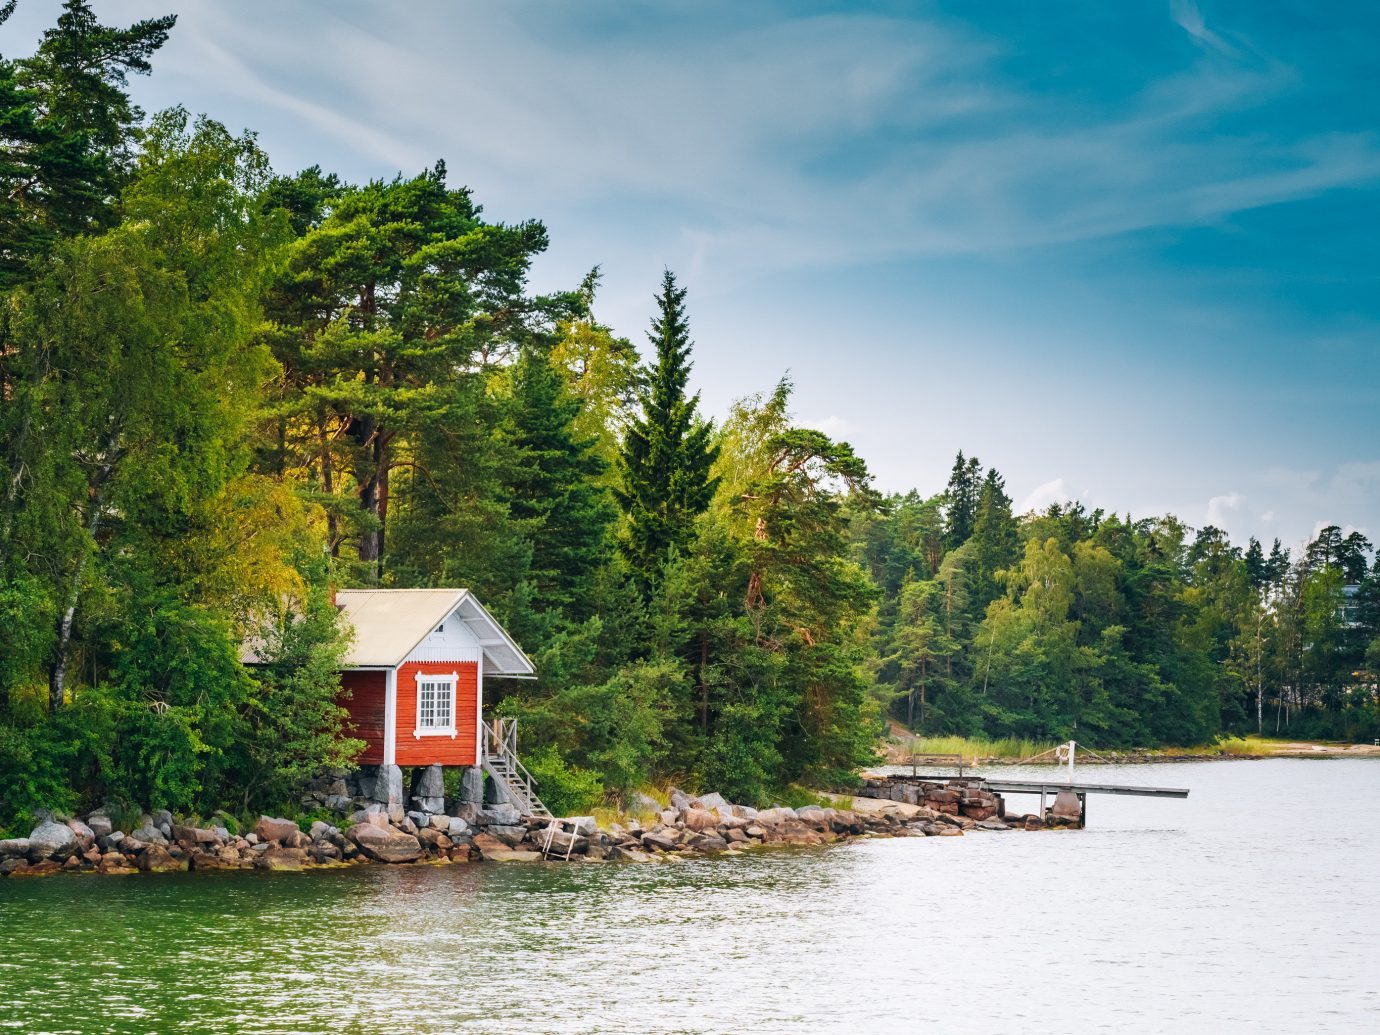 Offbeat Travel Tips tree outdoor water sky Boat Nature Lake River body of water shore vacation vehicle reflection rural area landscape Sea surrounded waterway Forest traveling wooded land several